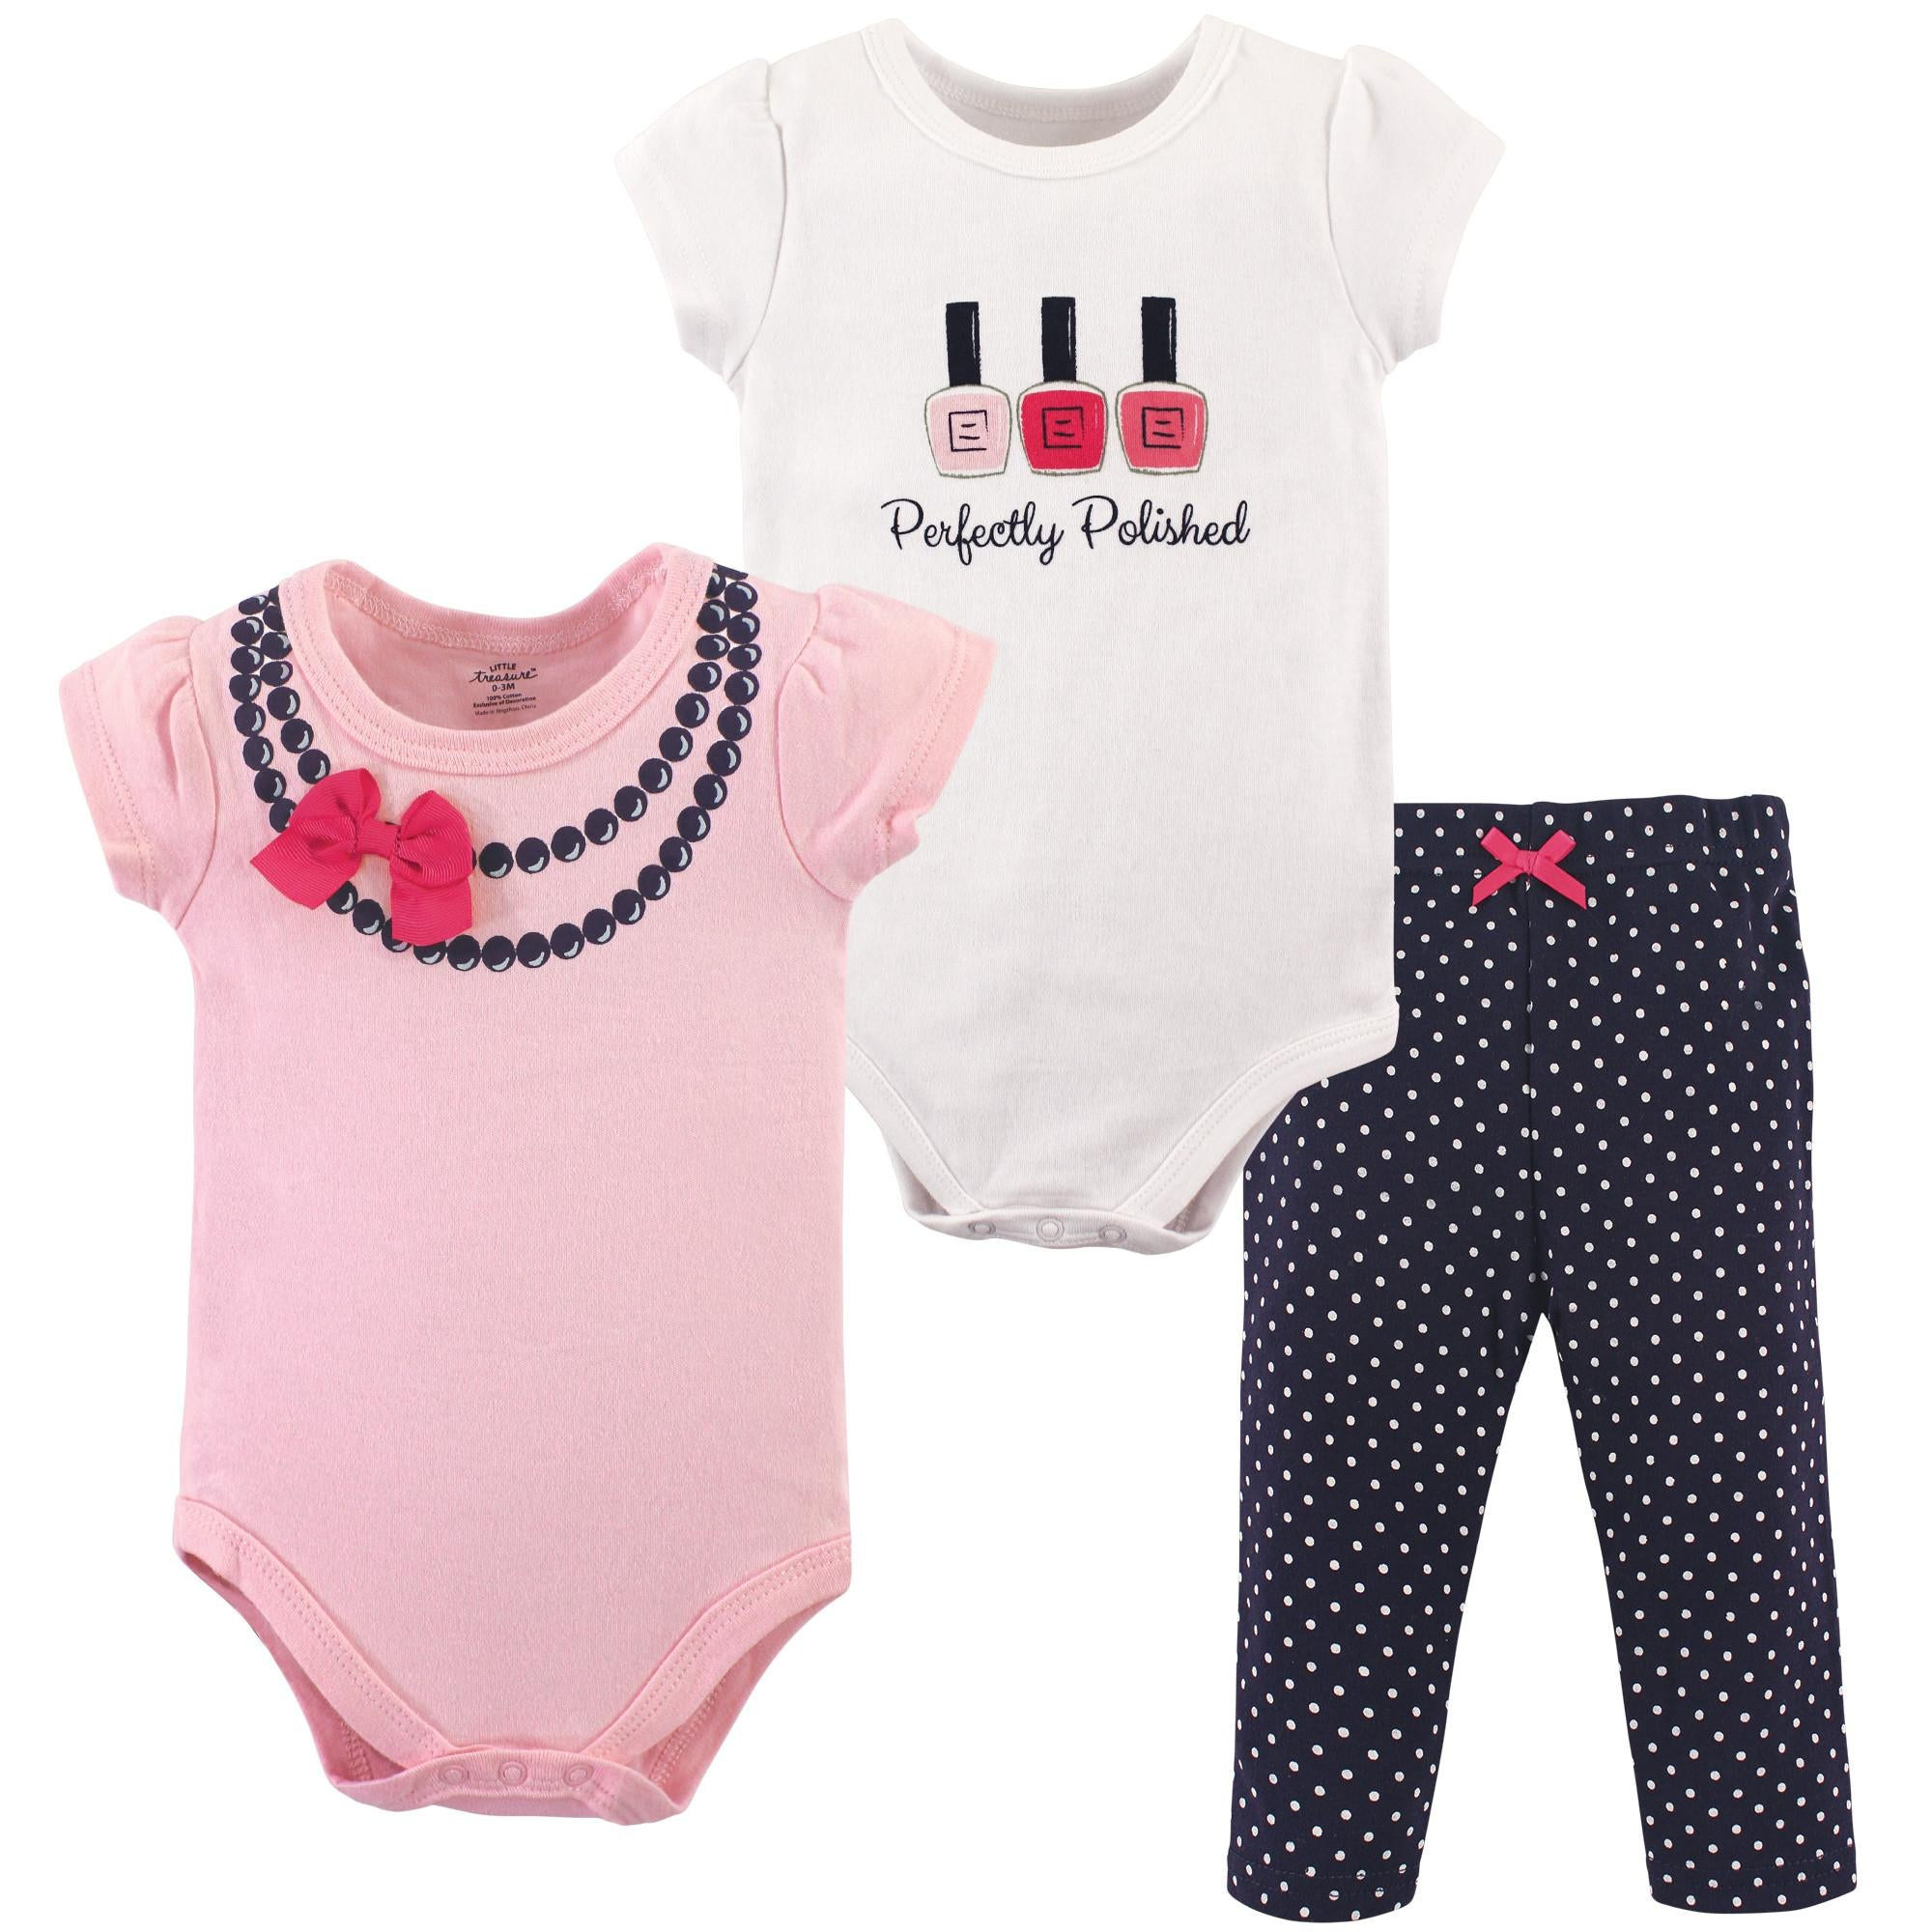 Luvable Friends Bodysuit 3pk (Perfectly Published)